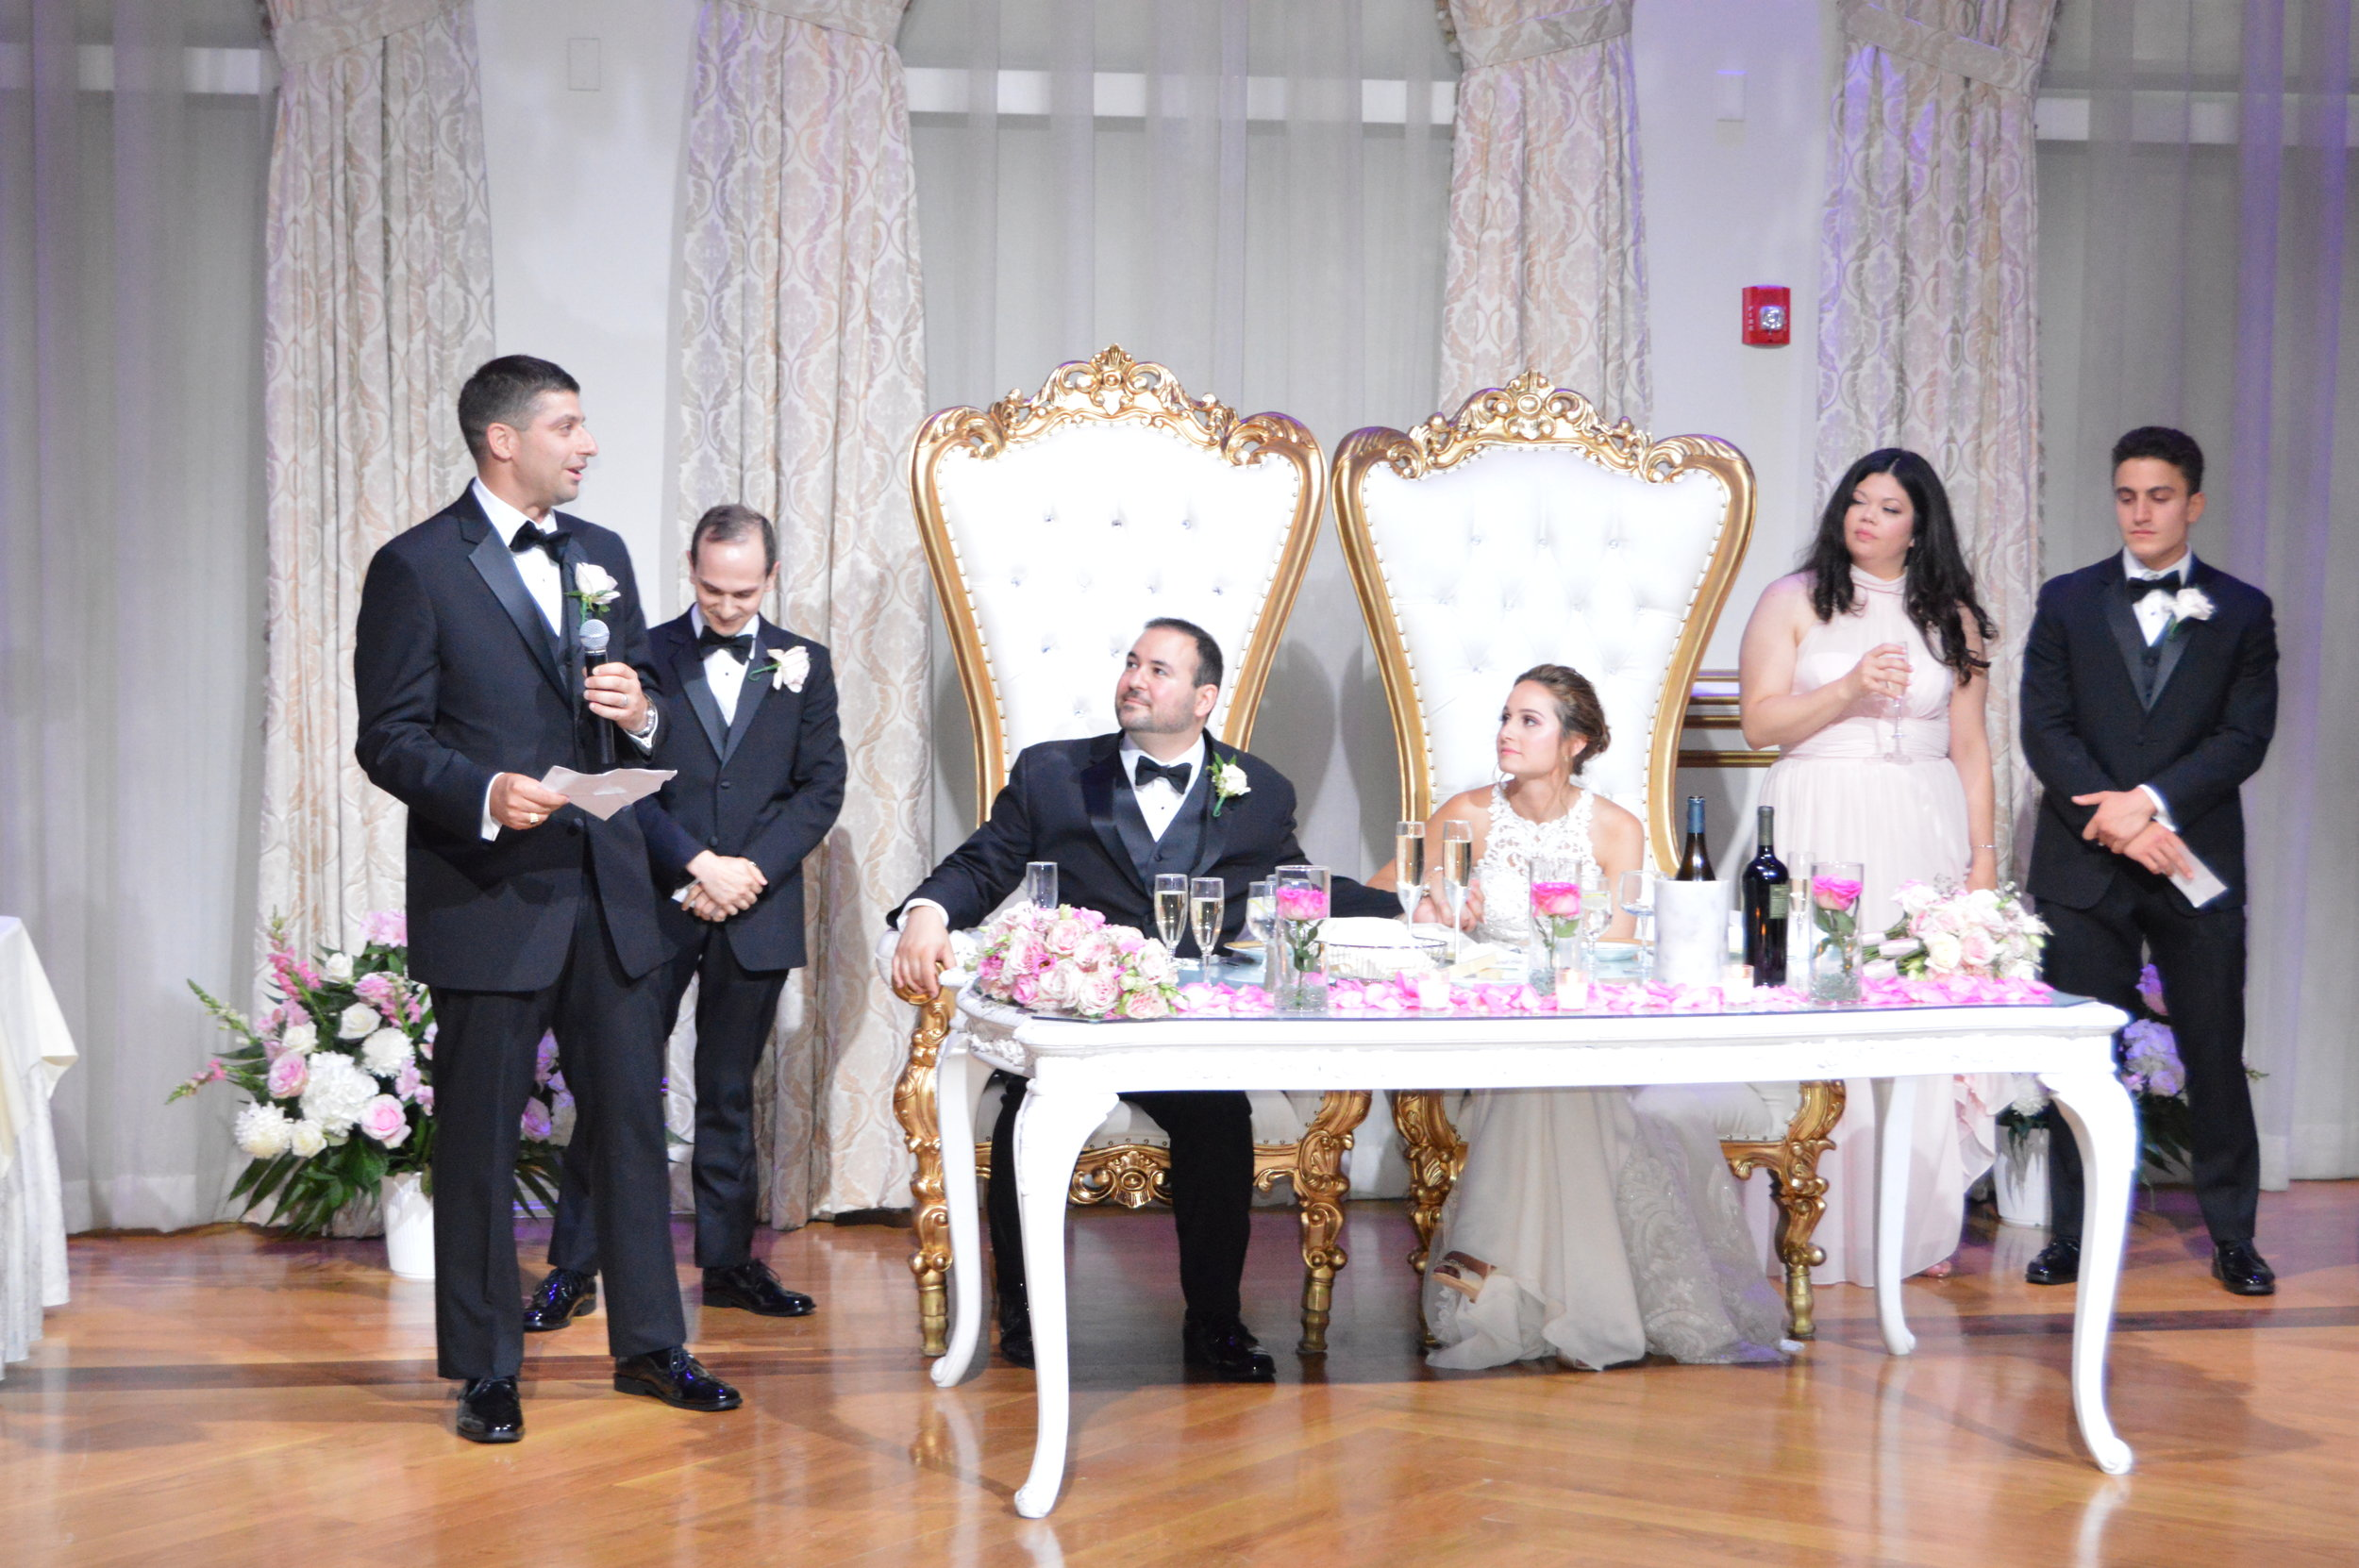 Amanda and Nick's Wedding! — Steve Guillen Productions, SG